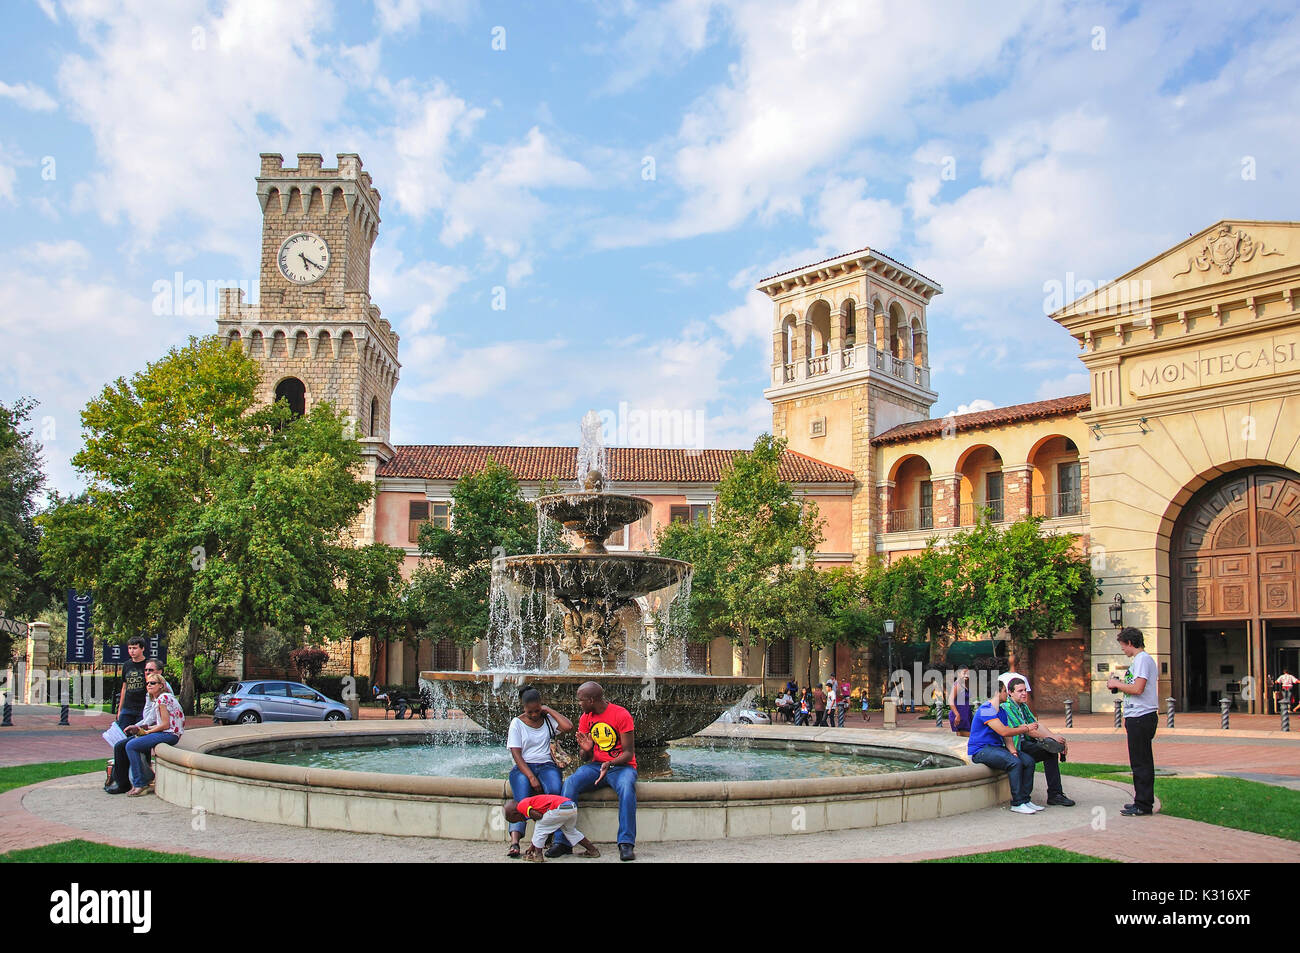 Montecasino Leisure & Casino Complex, Fourways, Sandton, Johannesburg, Gauteng Province, Republic of South Africa - Stock Image